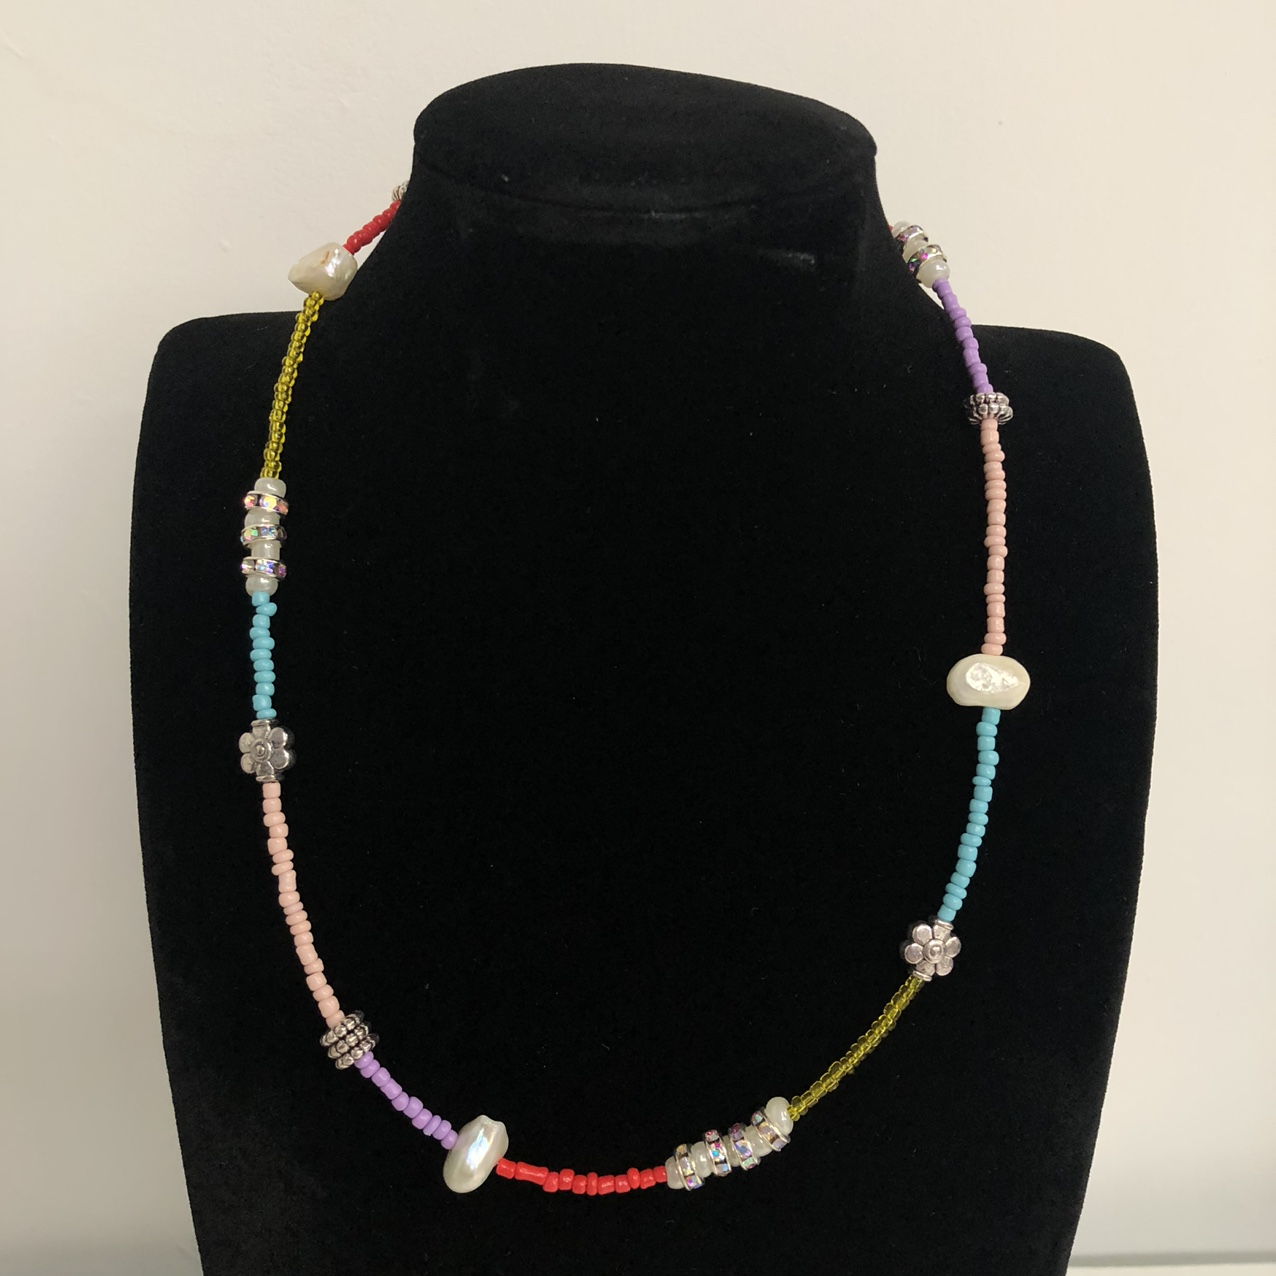 Product Image 1 - Seed Bead Necklace Between Sizes